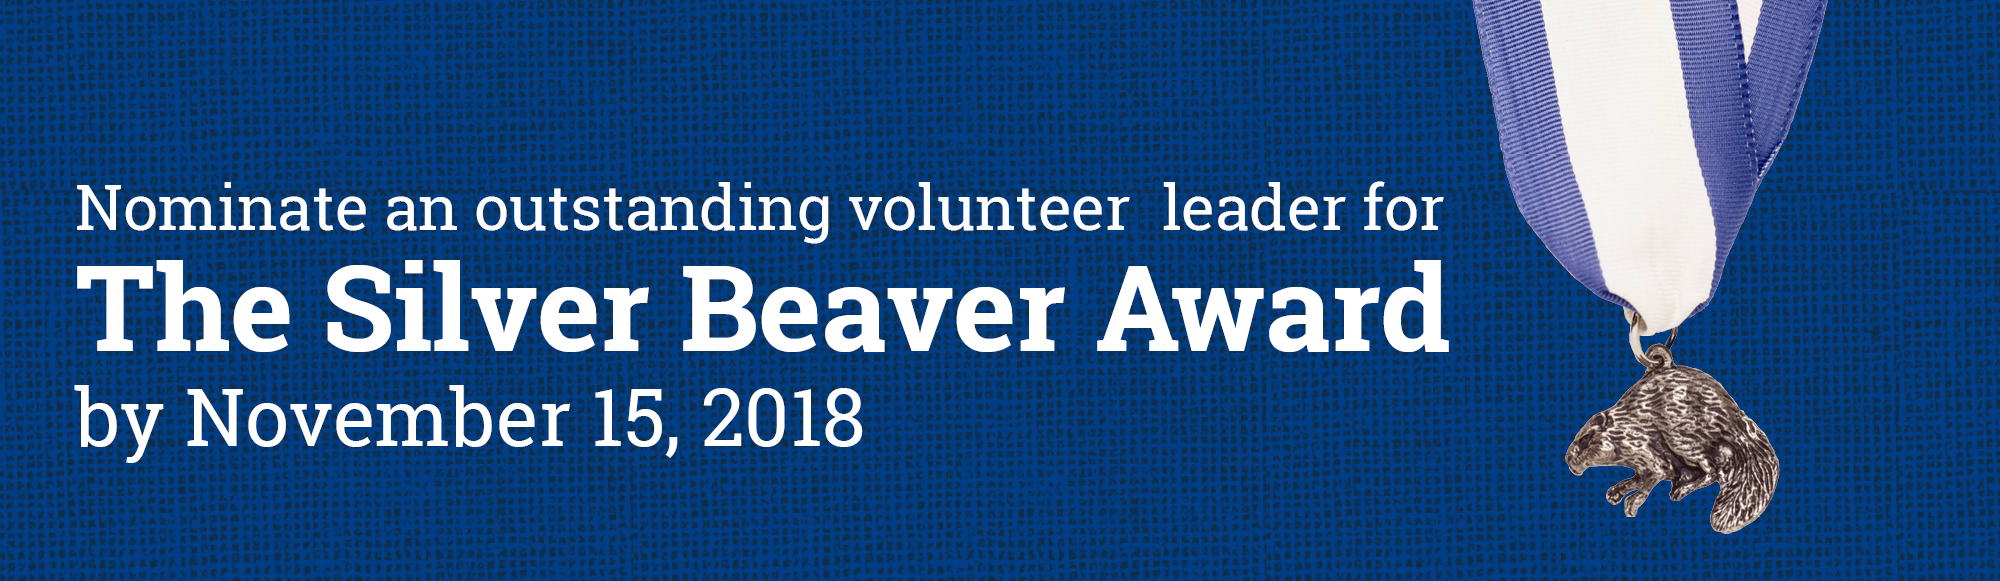 Nominate an outstanding volunteer for the Silver Beaver Award